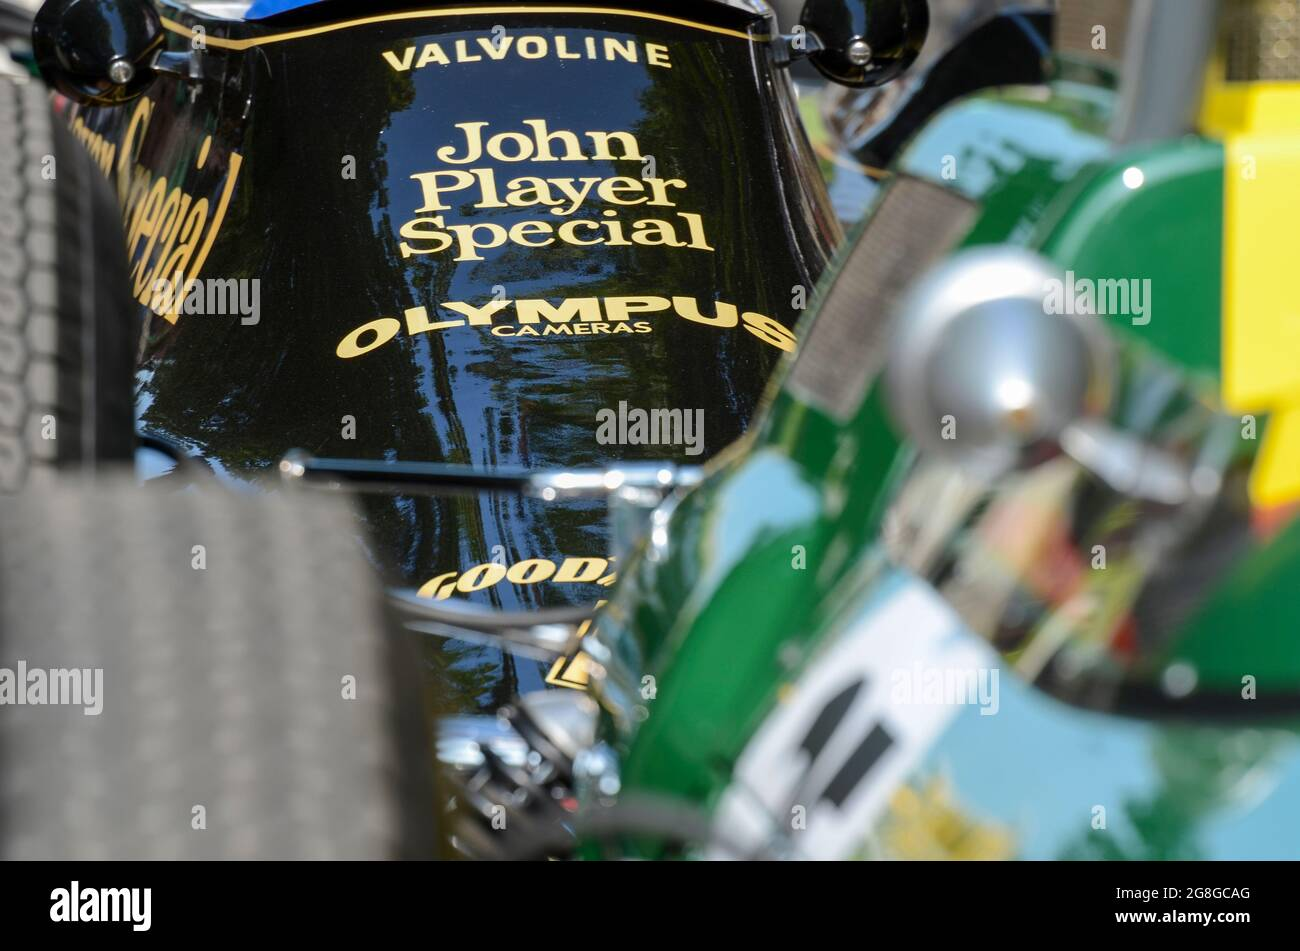 Detail of a 1970s Lotus 79 with John Player Special sponsorship behind a 1960s vintage green Lotus at the Goodwood Festival of Speed event, UK Stock Photo